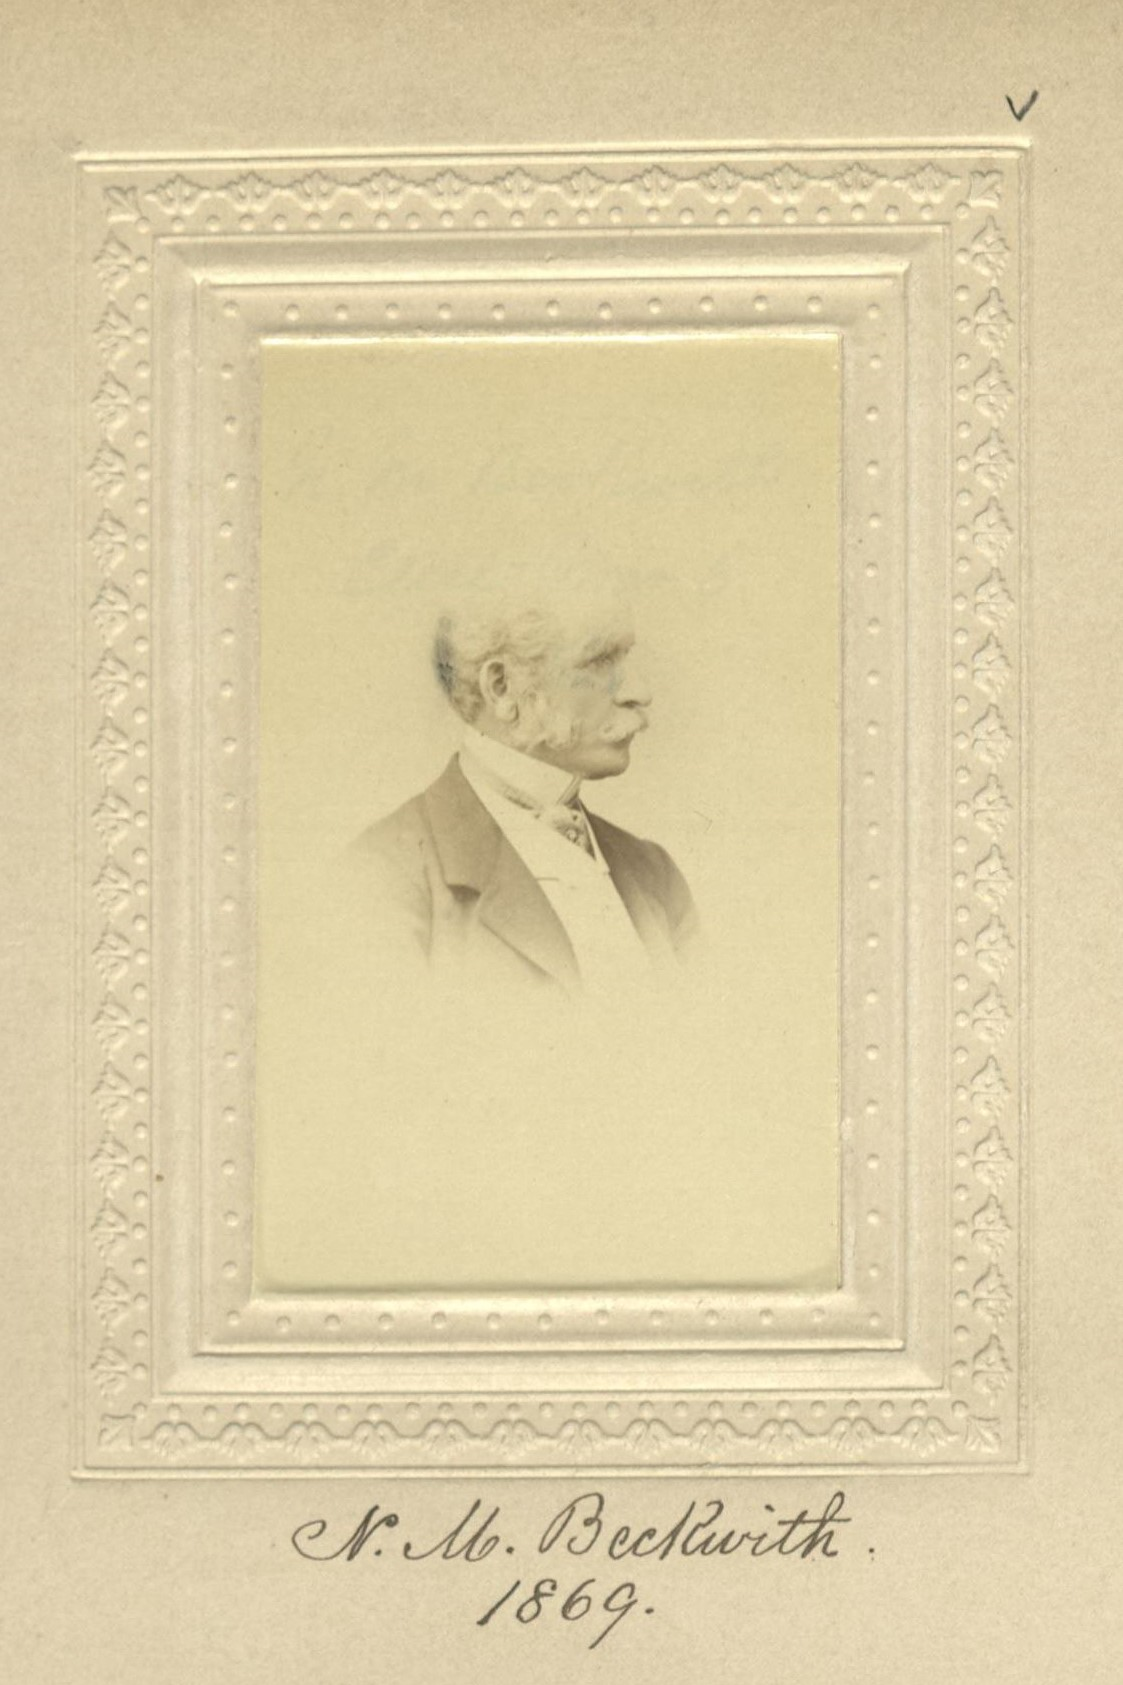 Member portrait of N. M. Beckwith